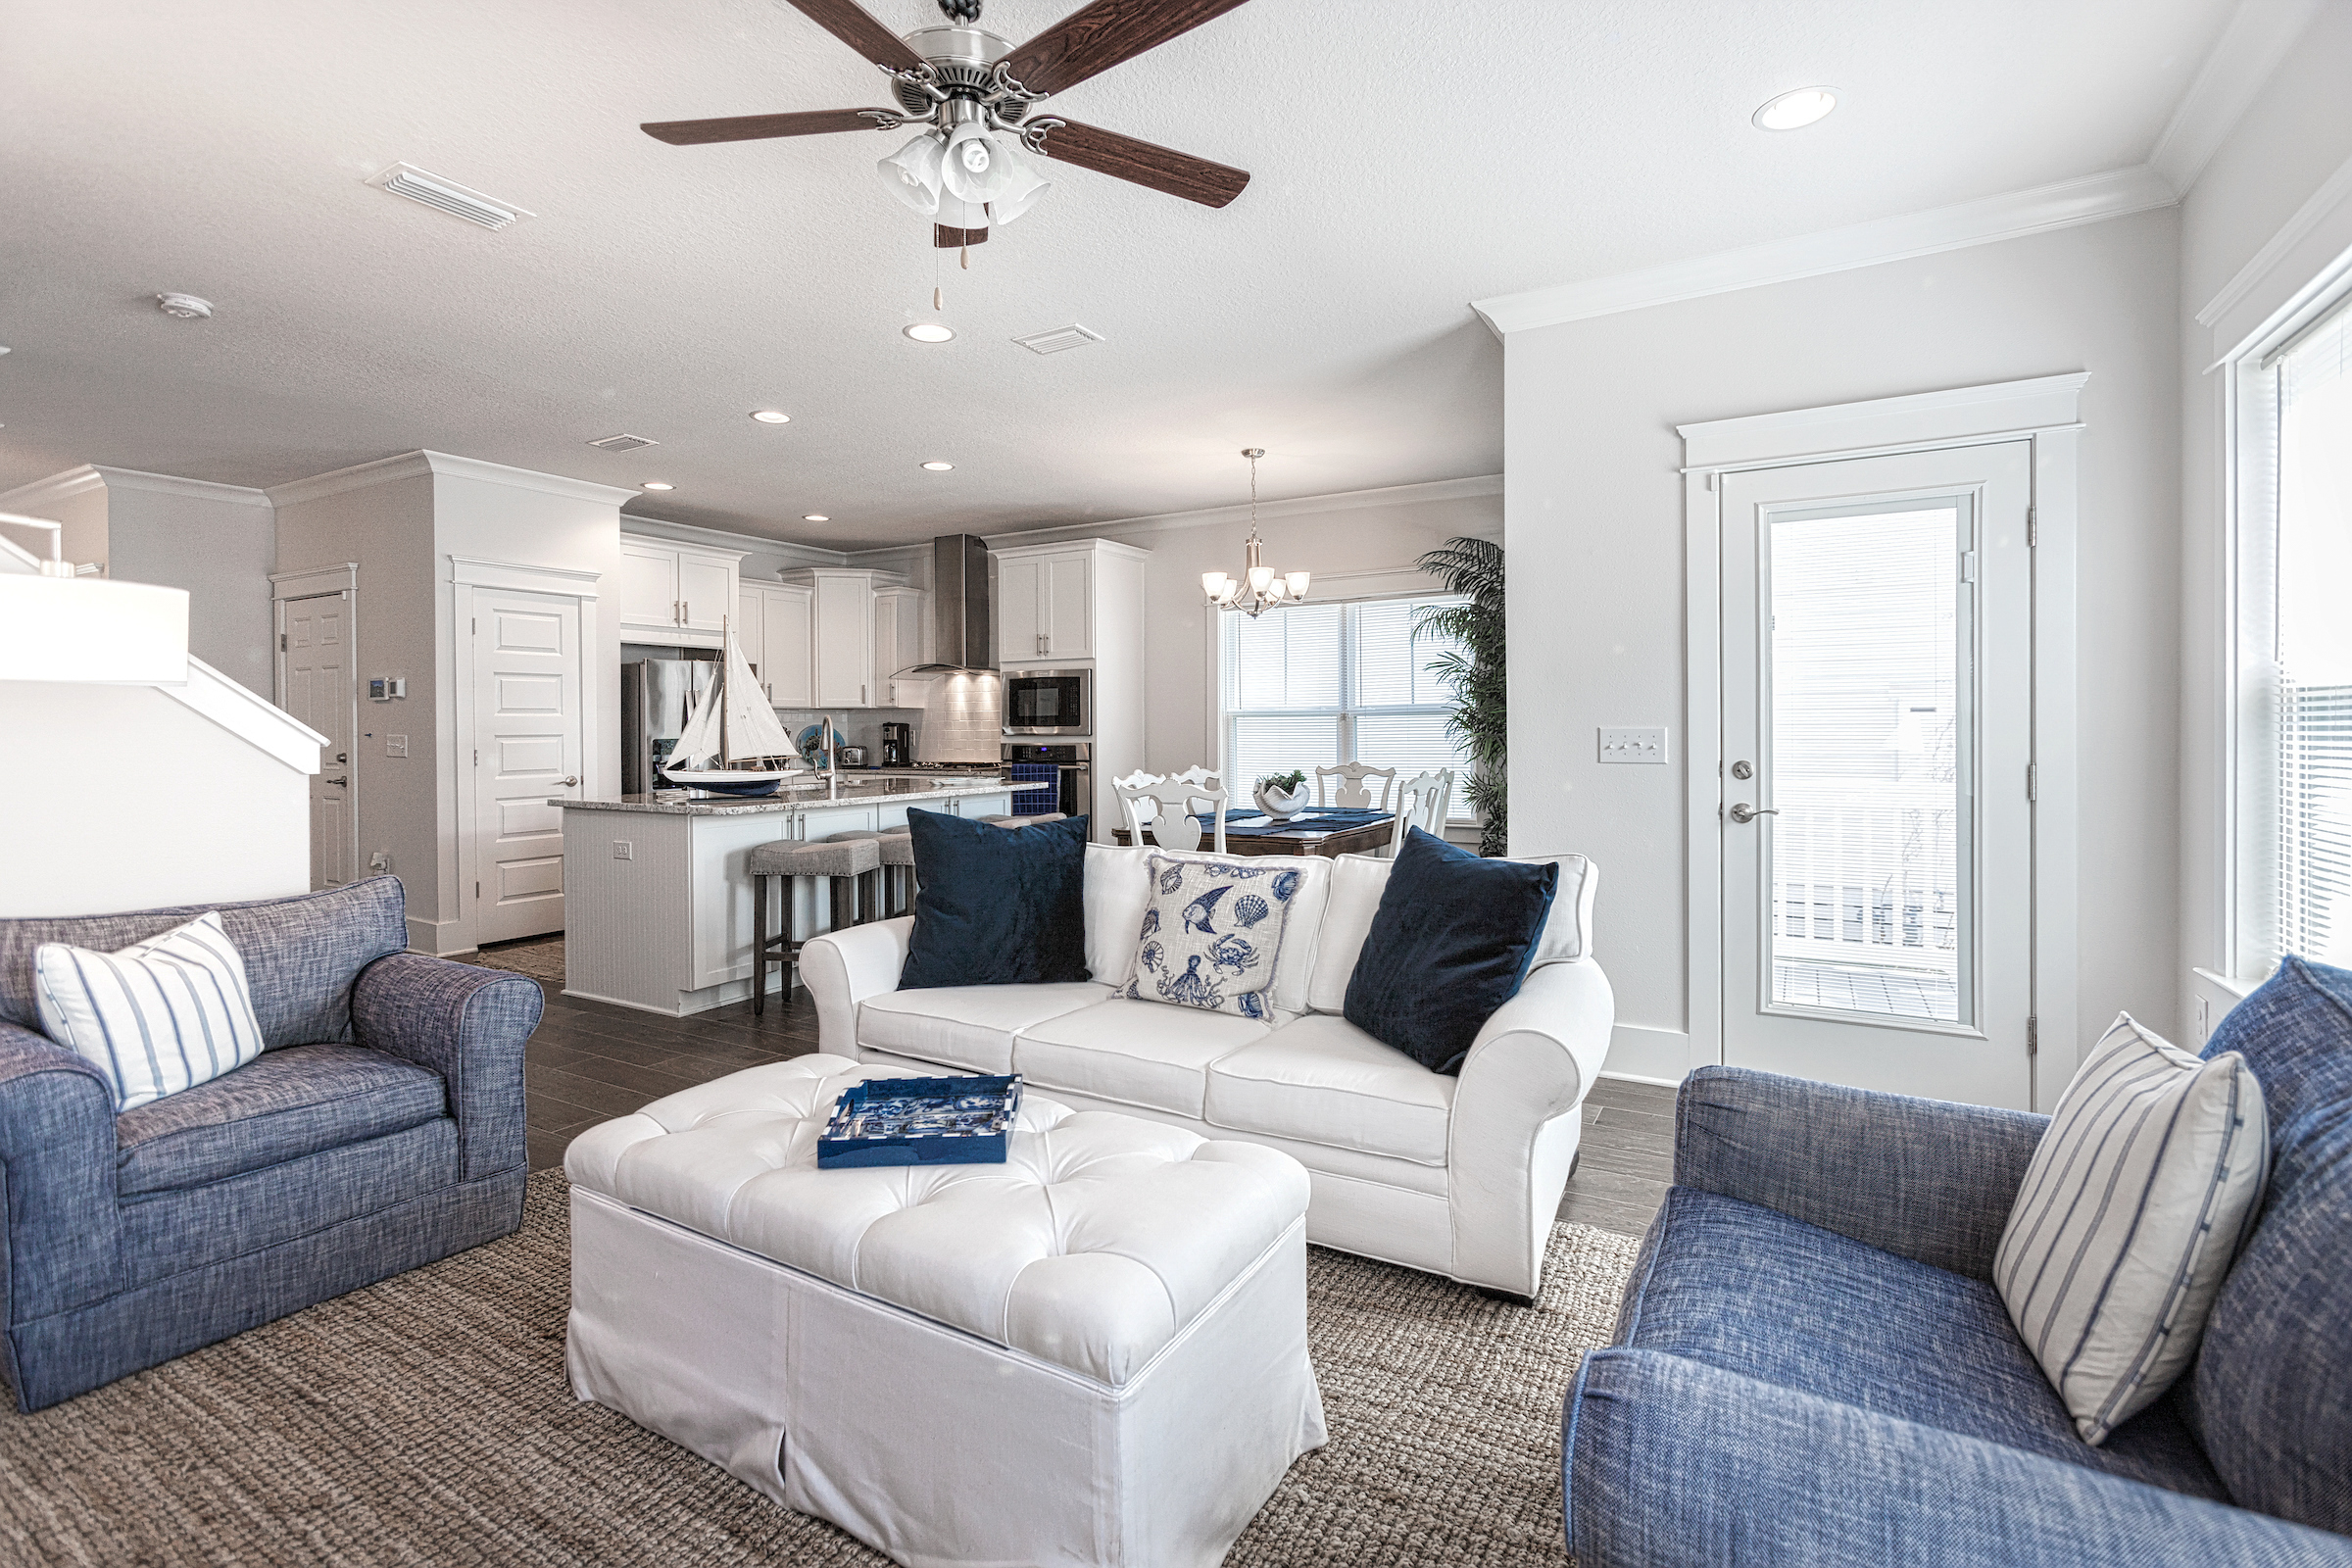 Inlet Beach FL Vacation Rental Welcome! This home